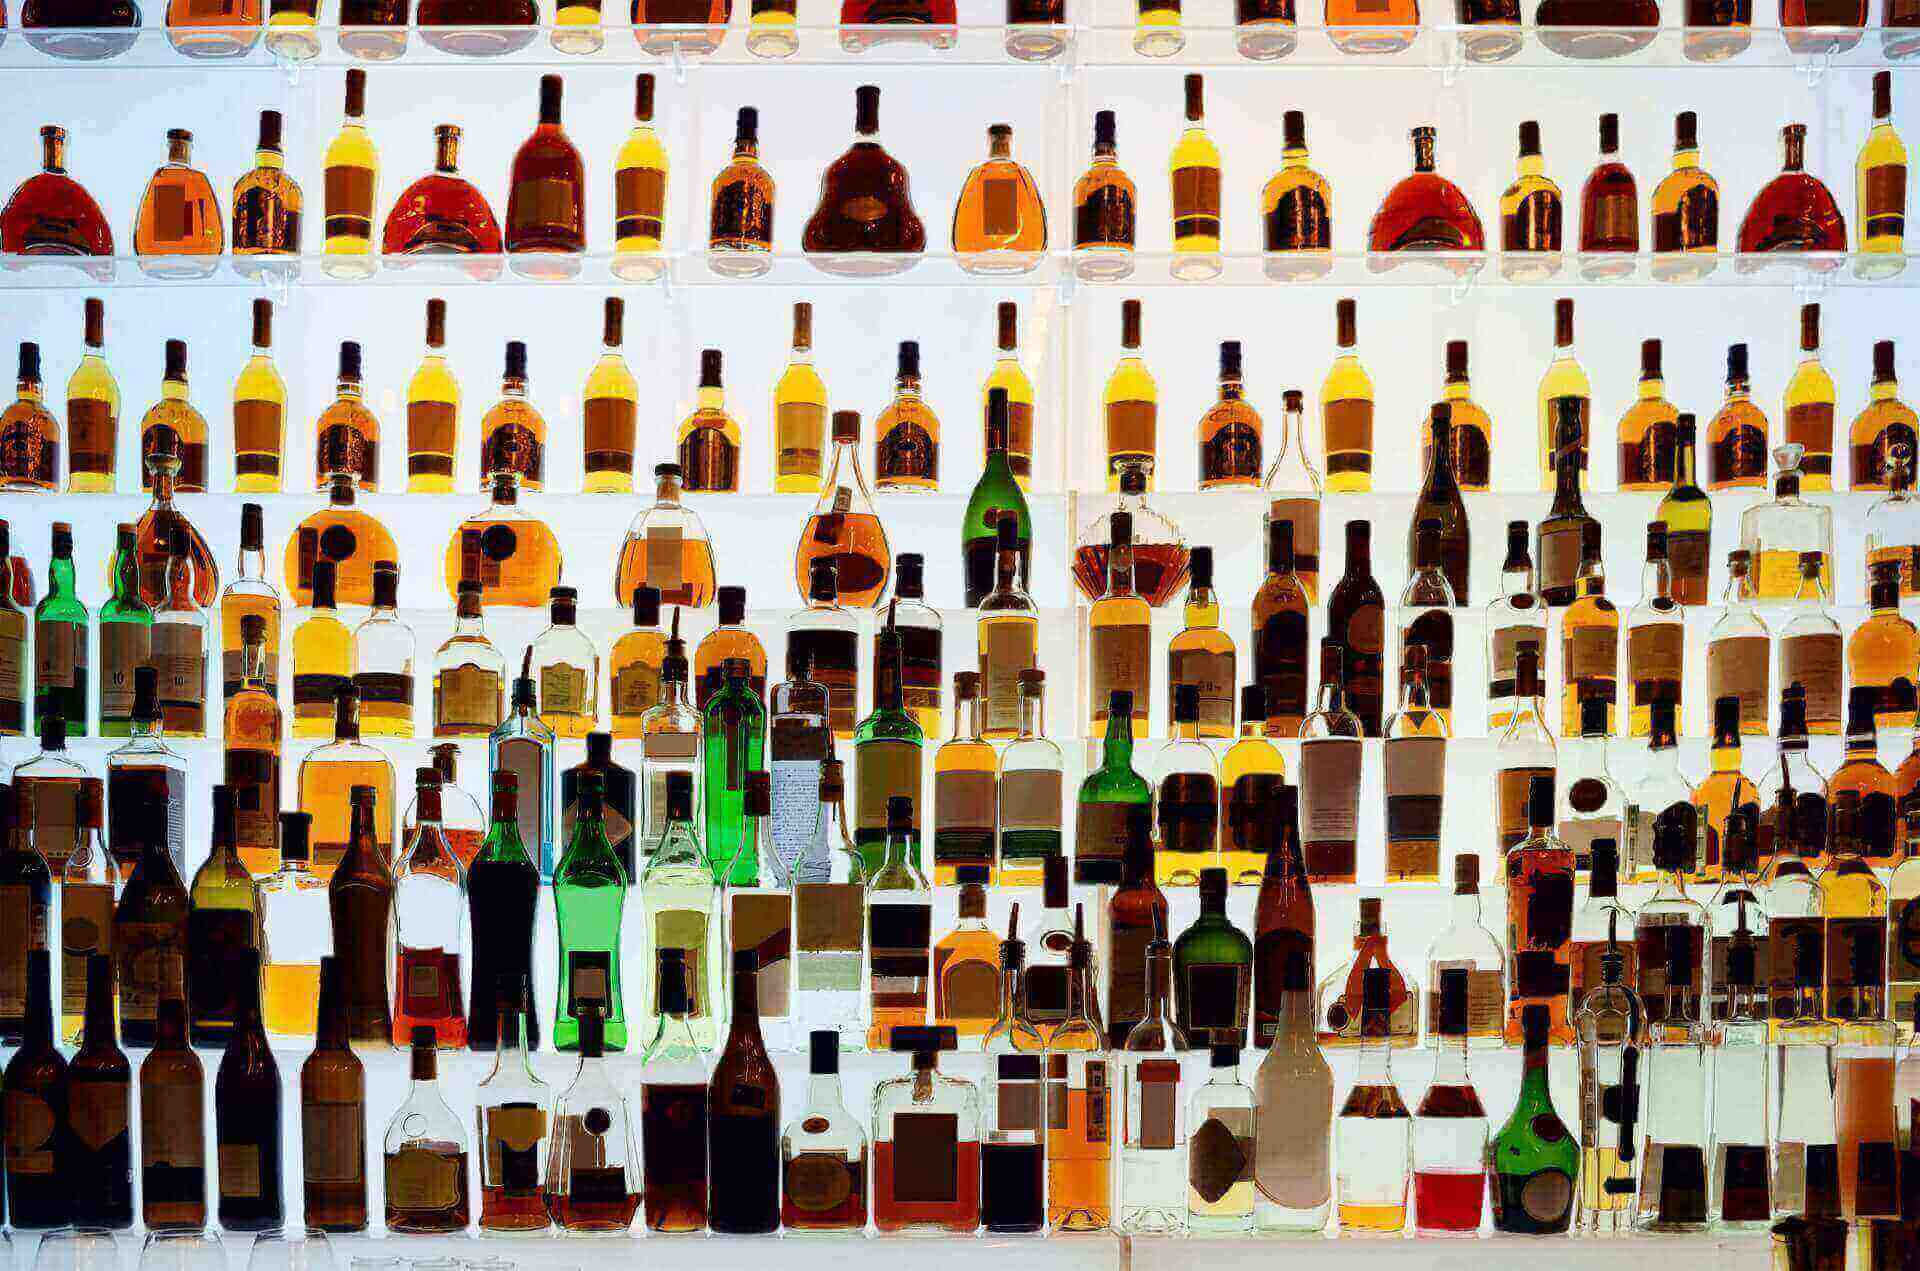 Top Shelf Liquors e1512434197219